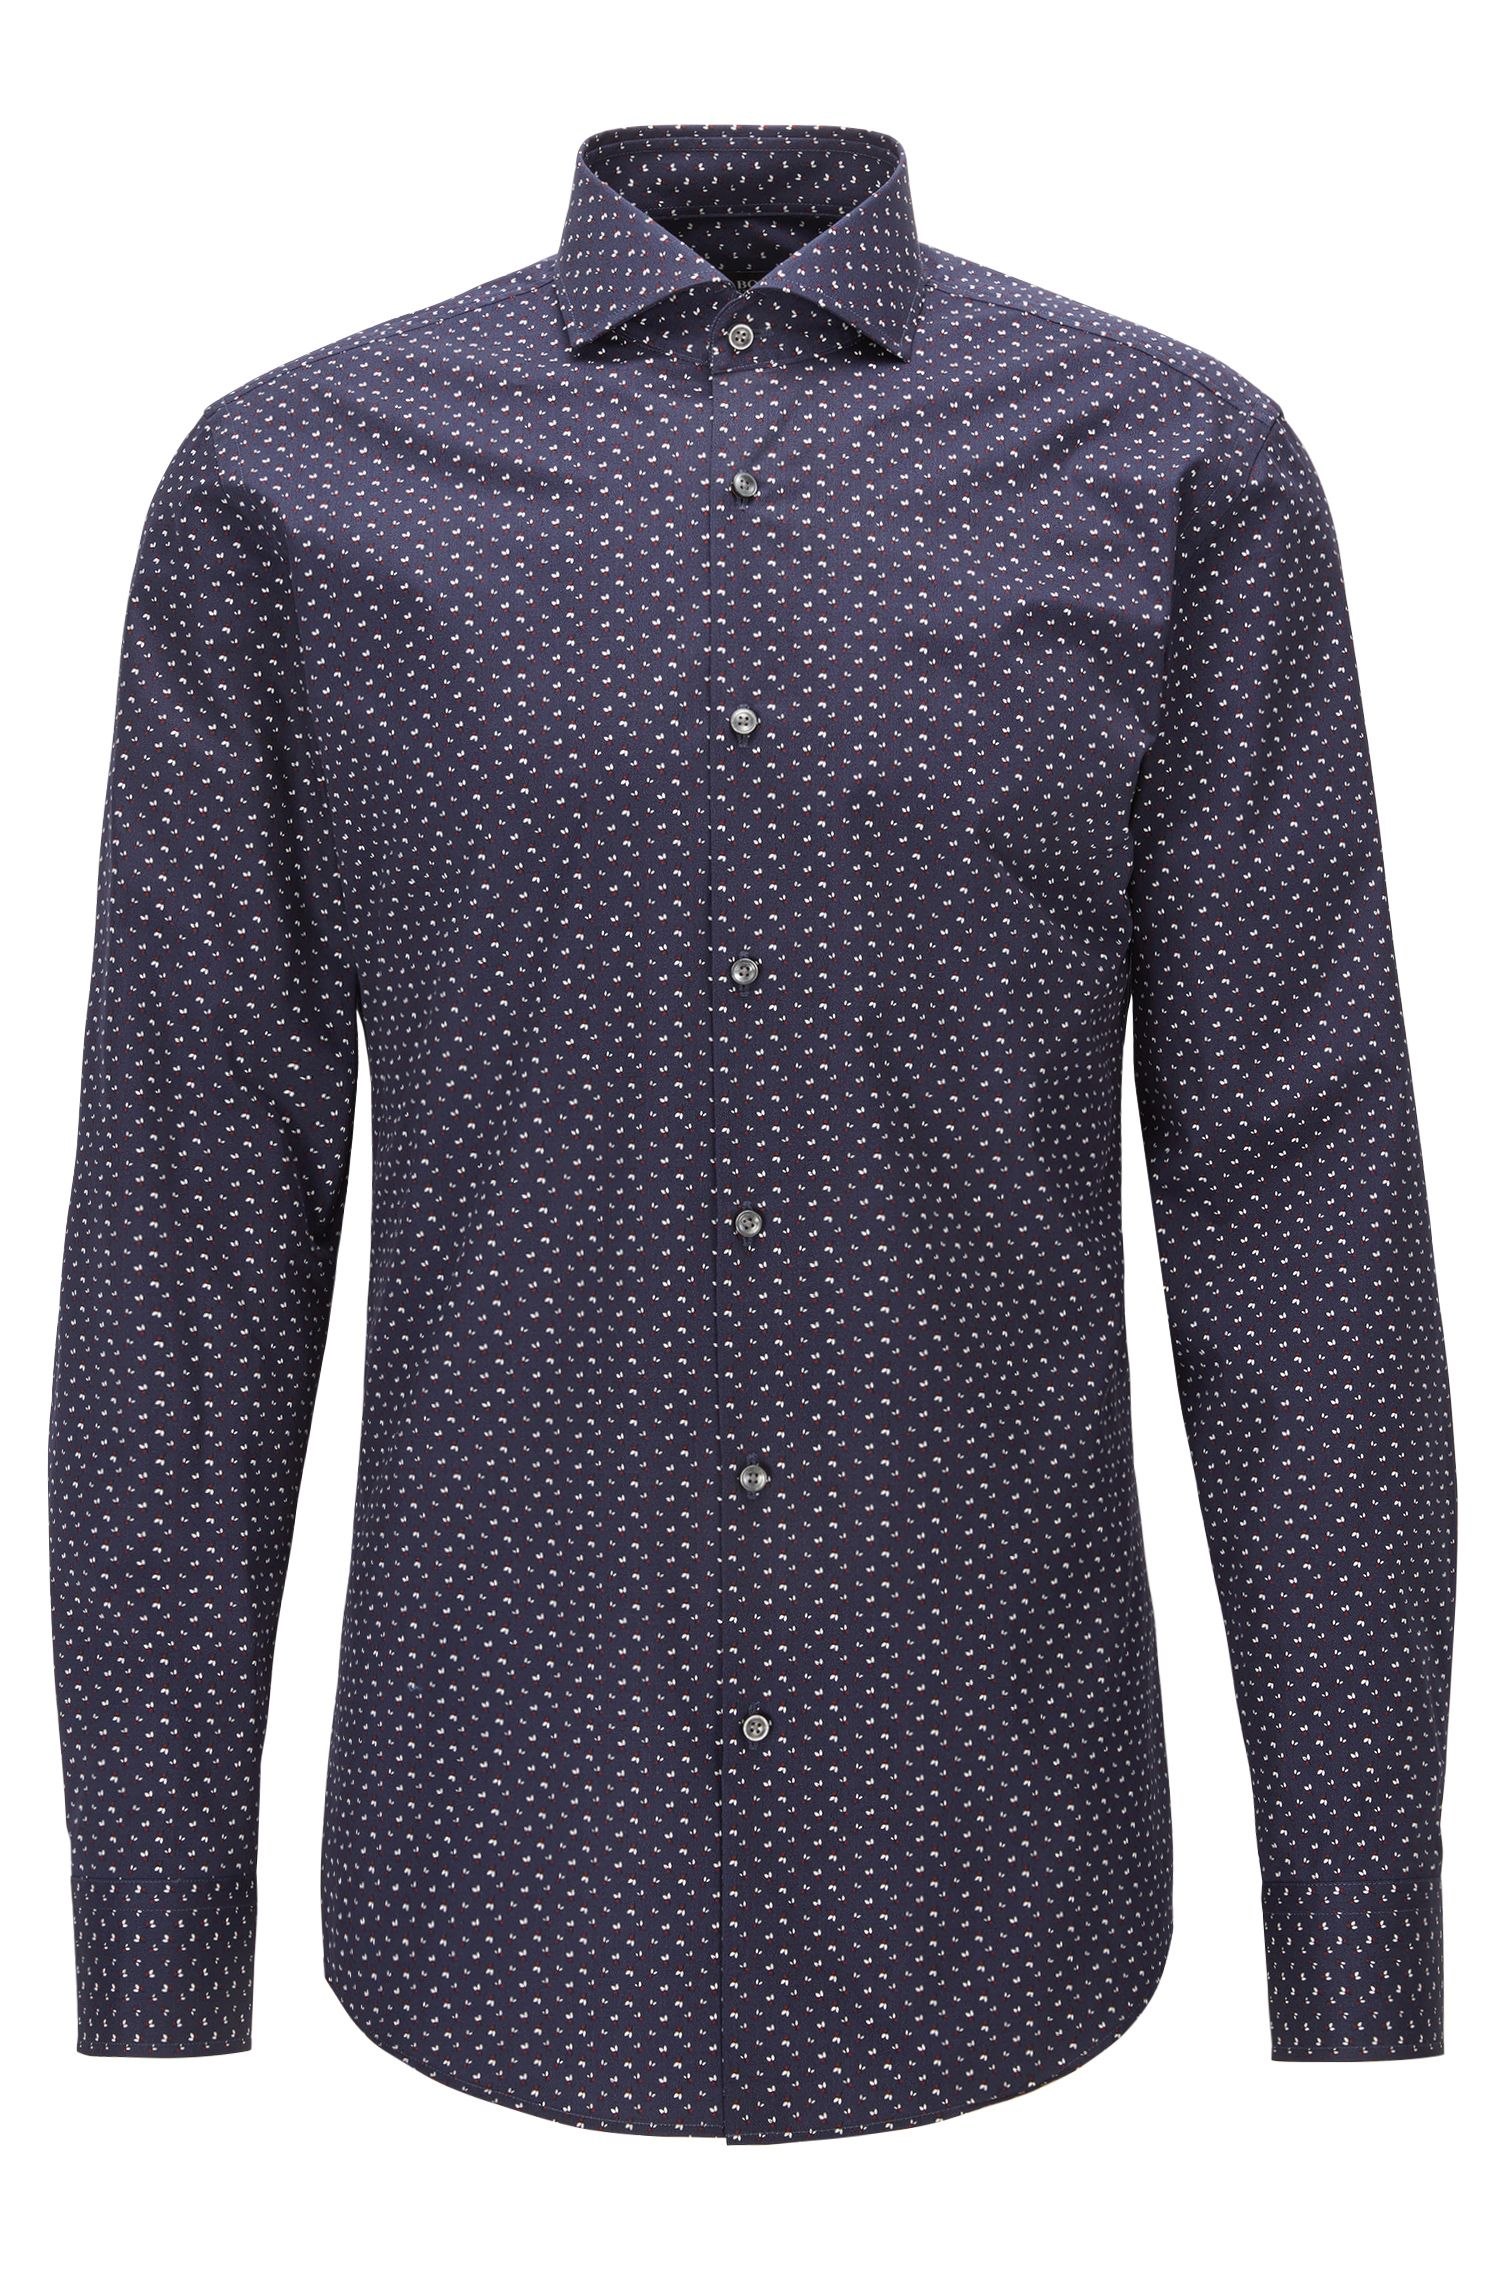 Firefly Cotton Dress Shirt, Slim Fit | Jason